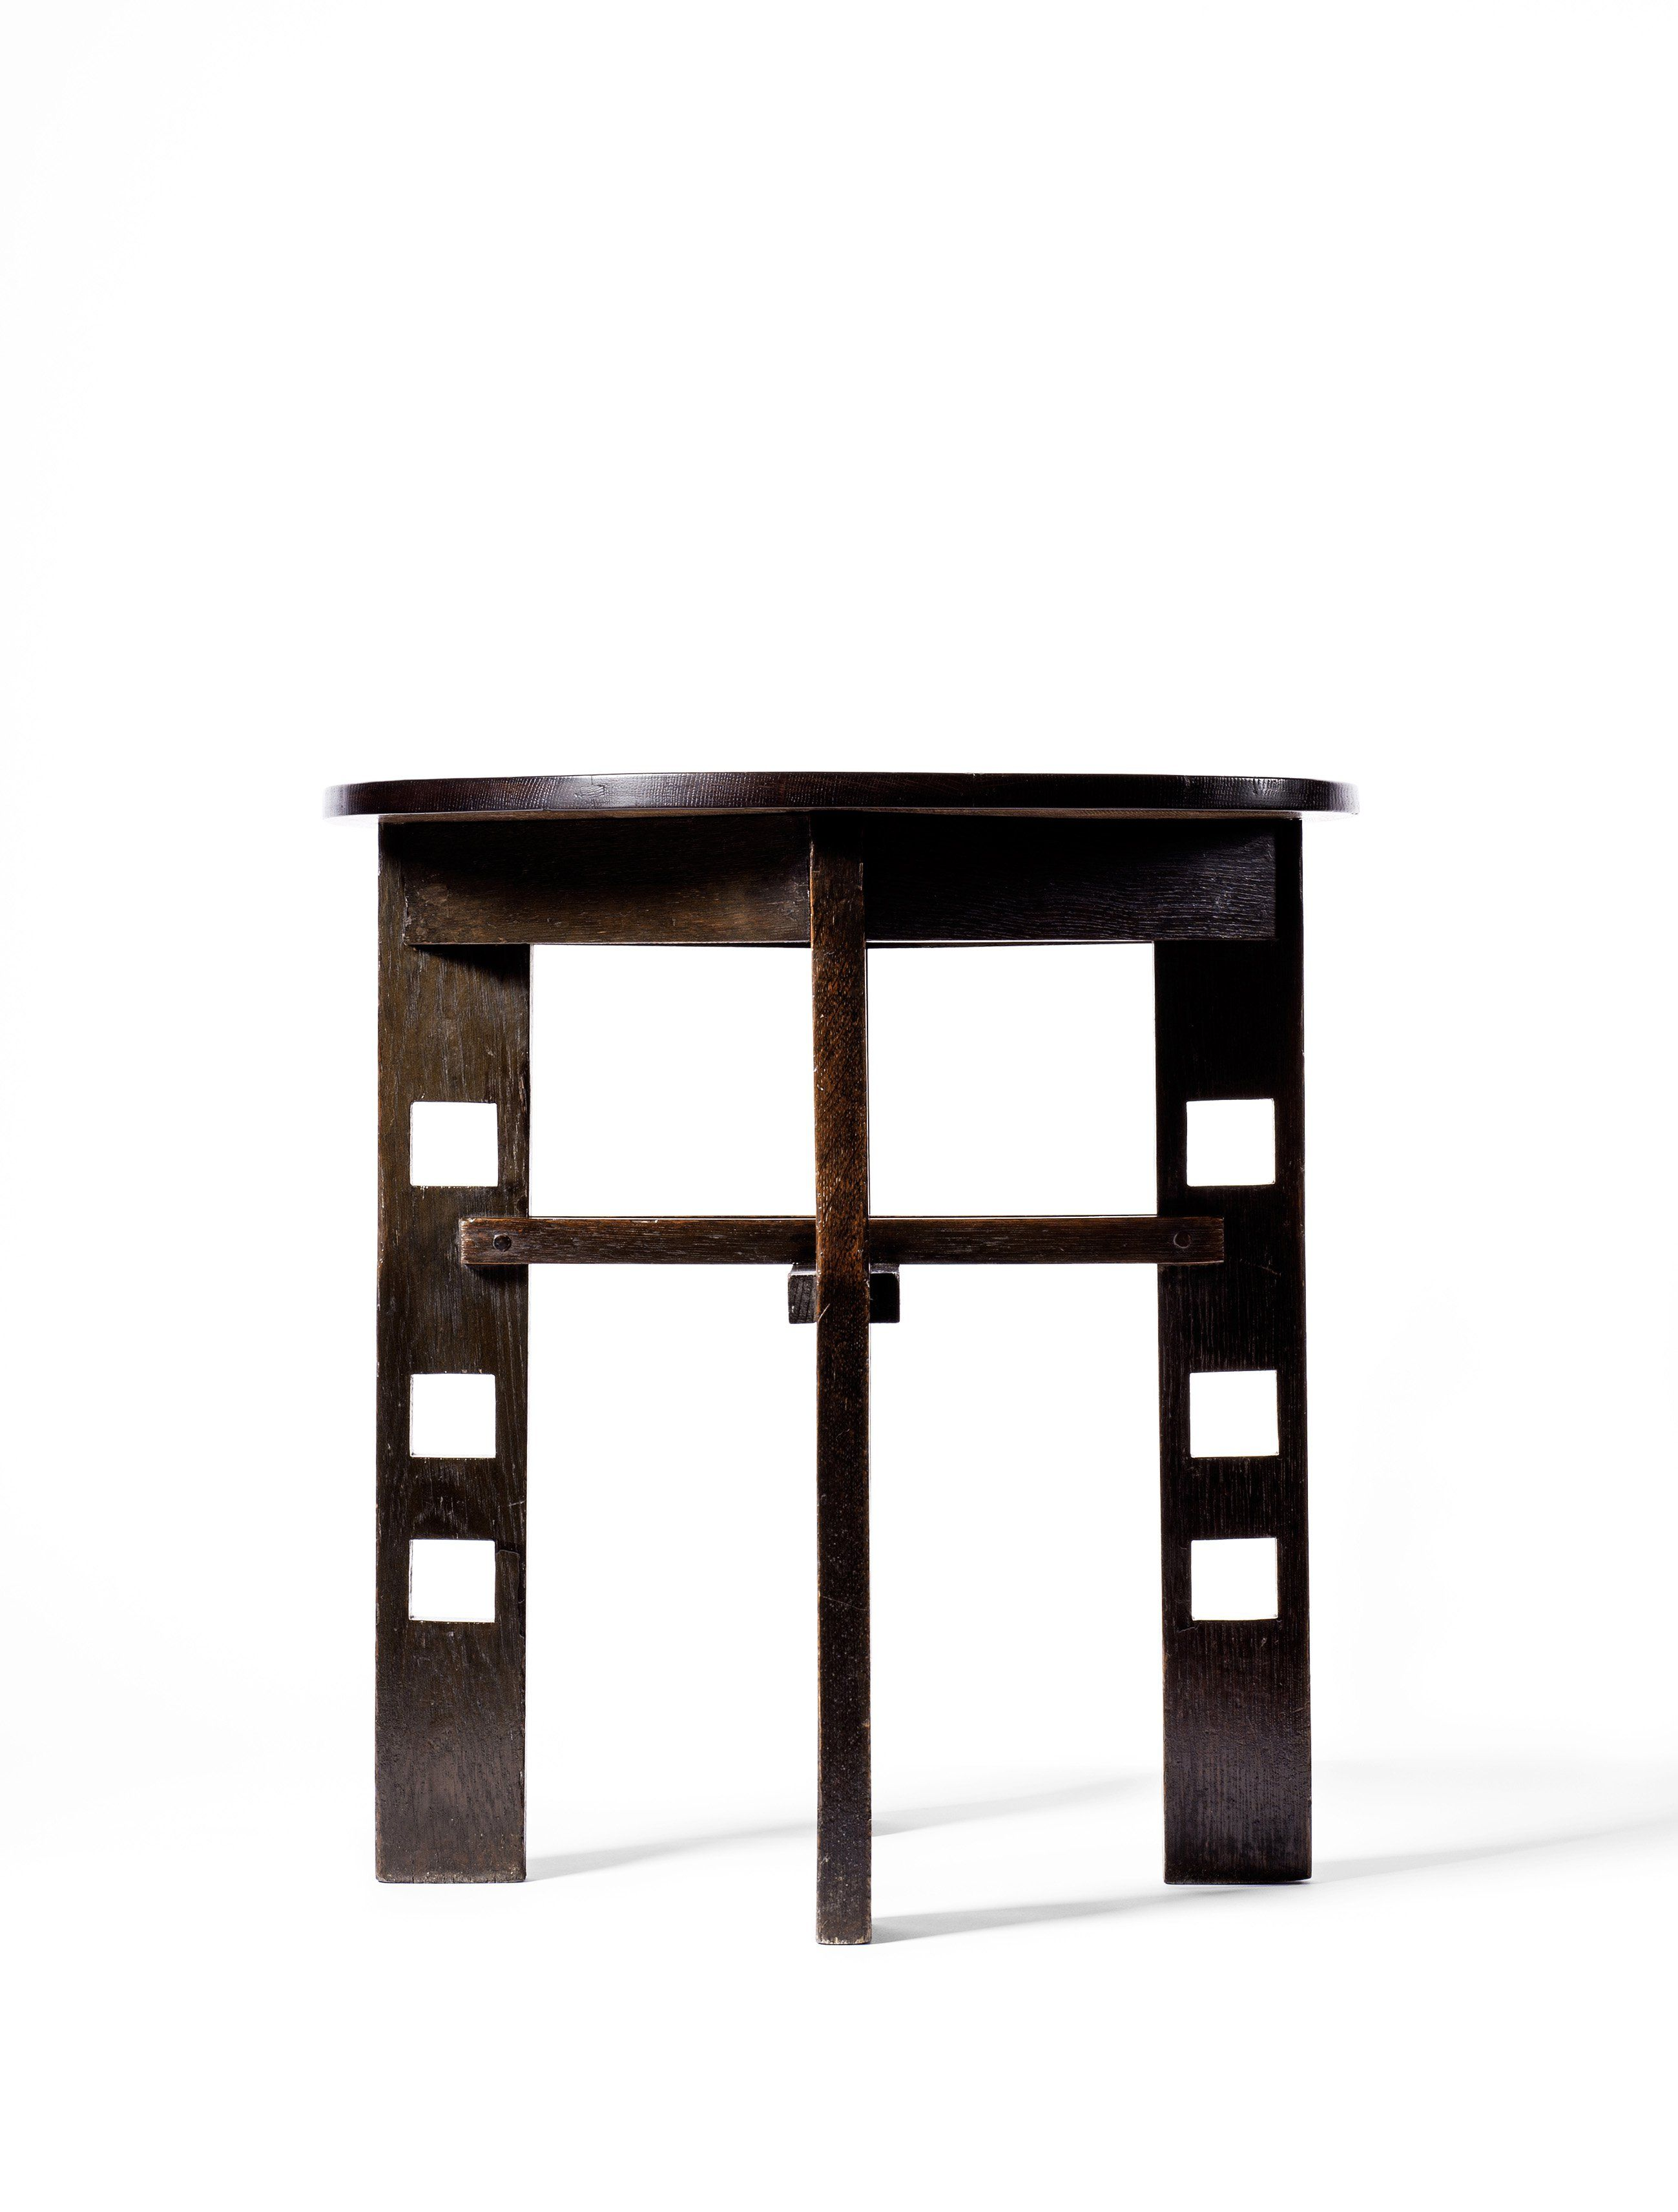 Charles rennie mackintosh table 1903 ebonized oak made by francis smith 715 cm x 65 cm two pieces made designed for the willow tea rooms glasgow